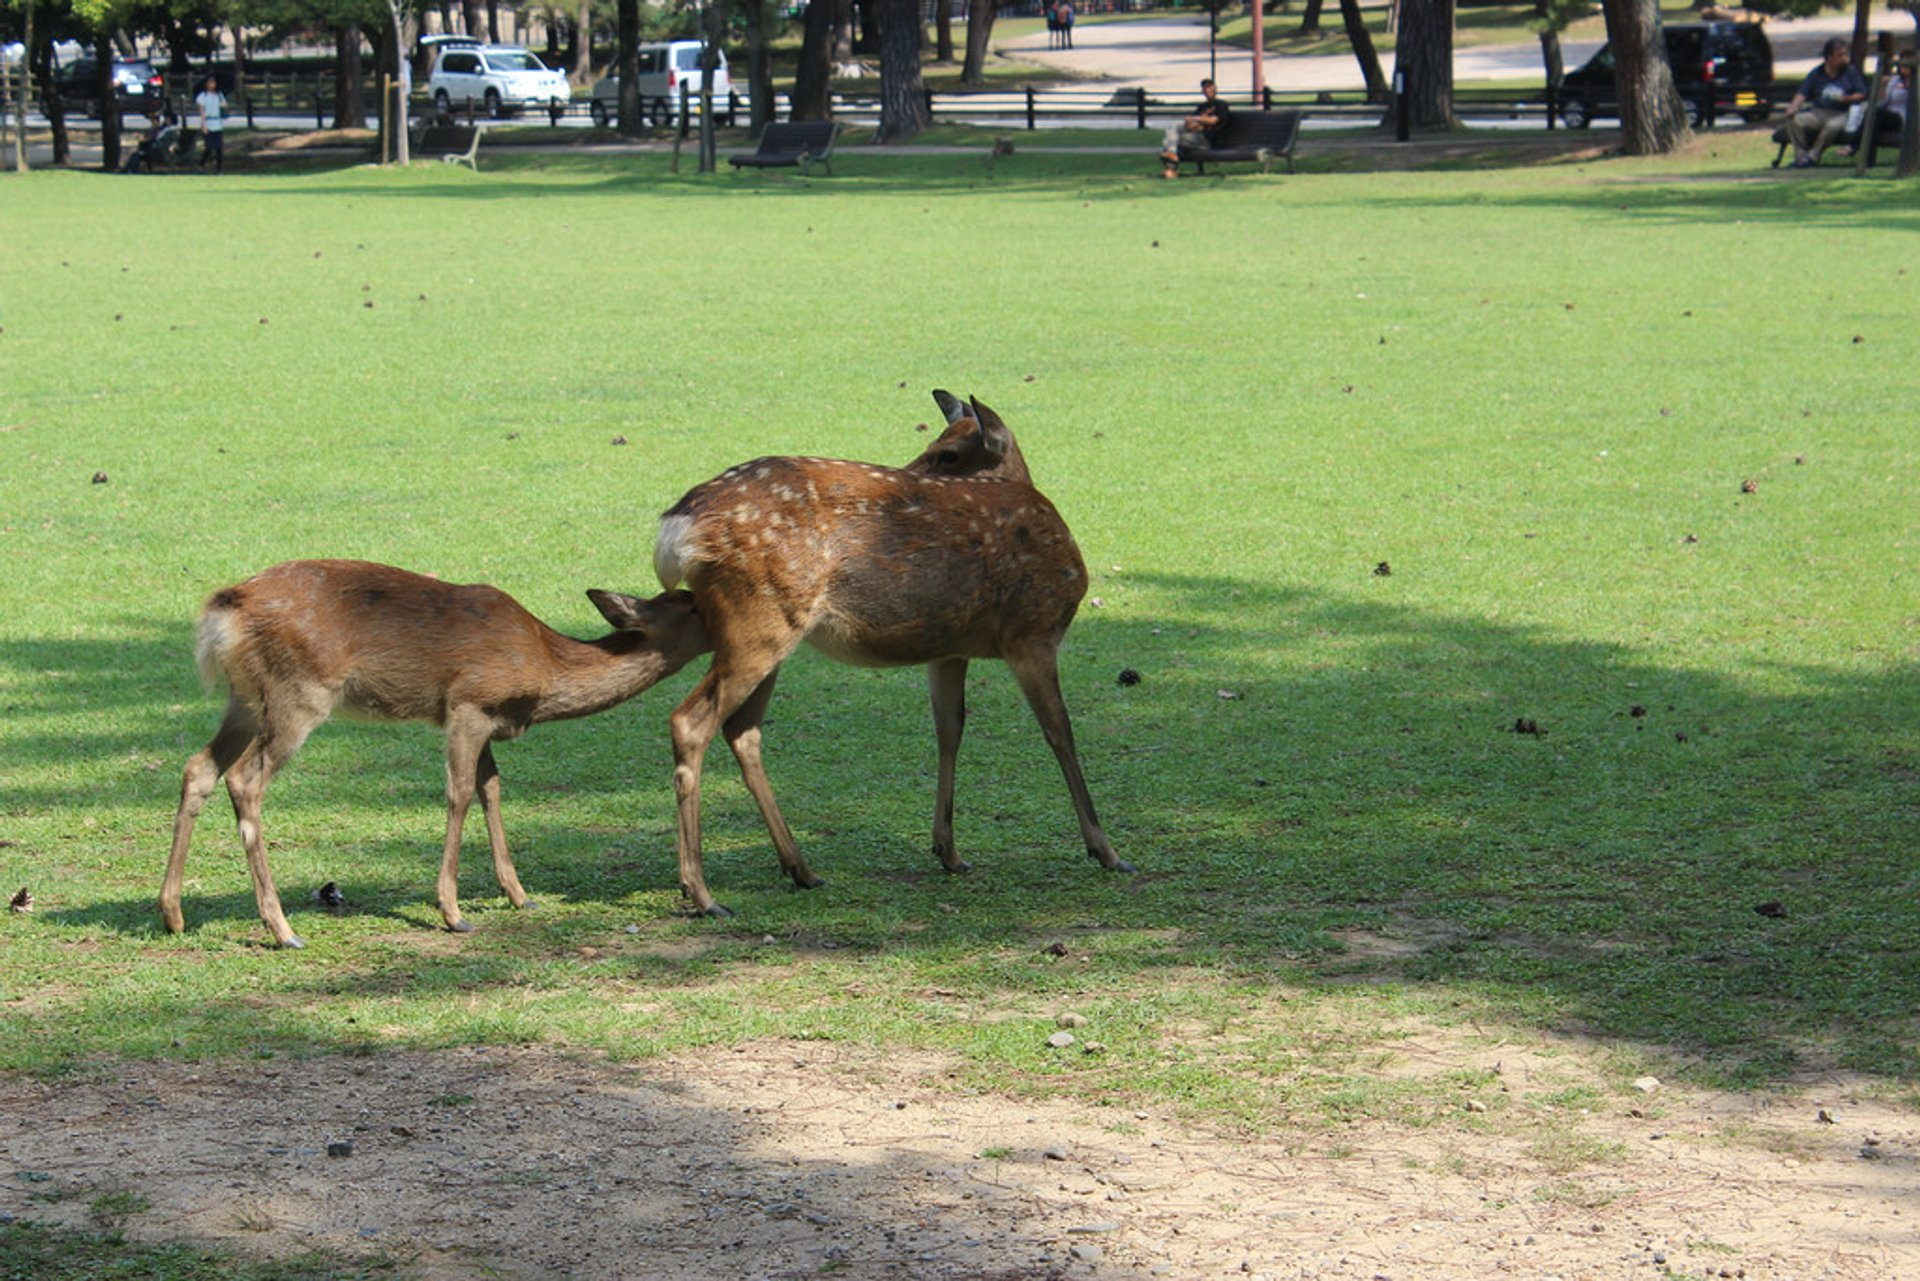 Baby Deer at Nara Park in Japan 2020 - Best Time